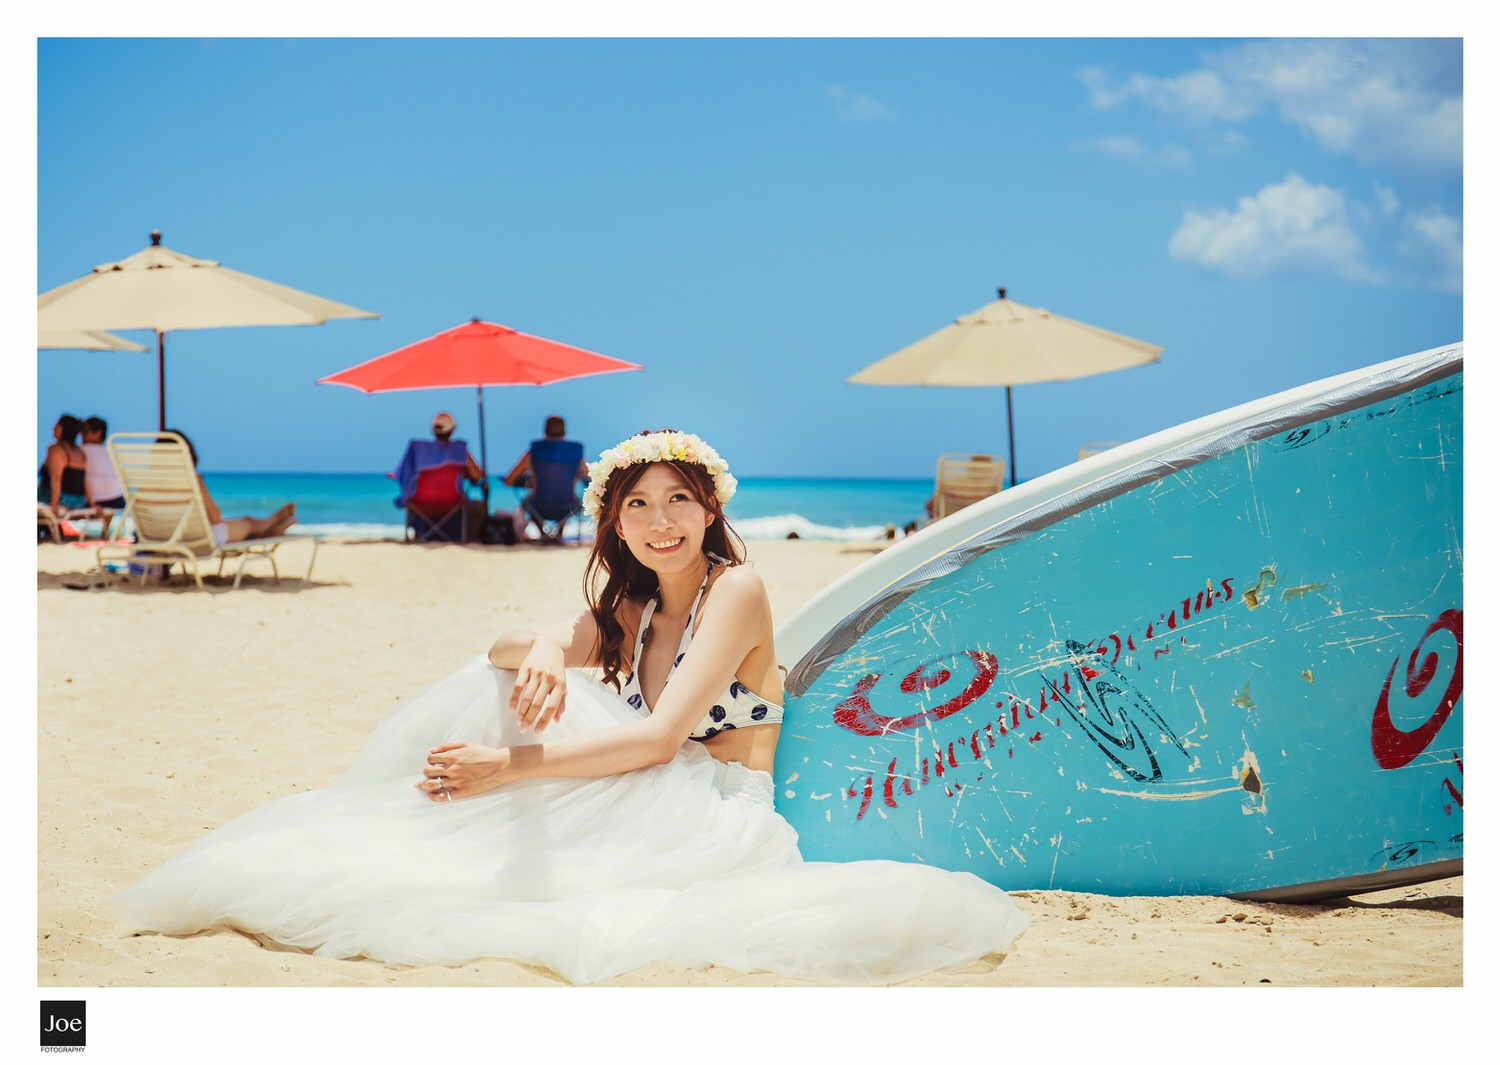 086-waikiki-beach-hawaii-pre-wedding-tiffany-tony-joe-fotography.jpg